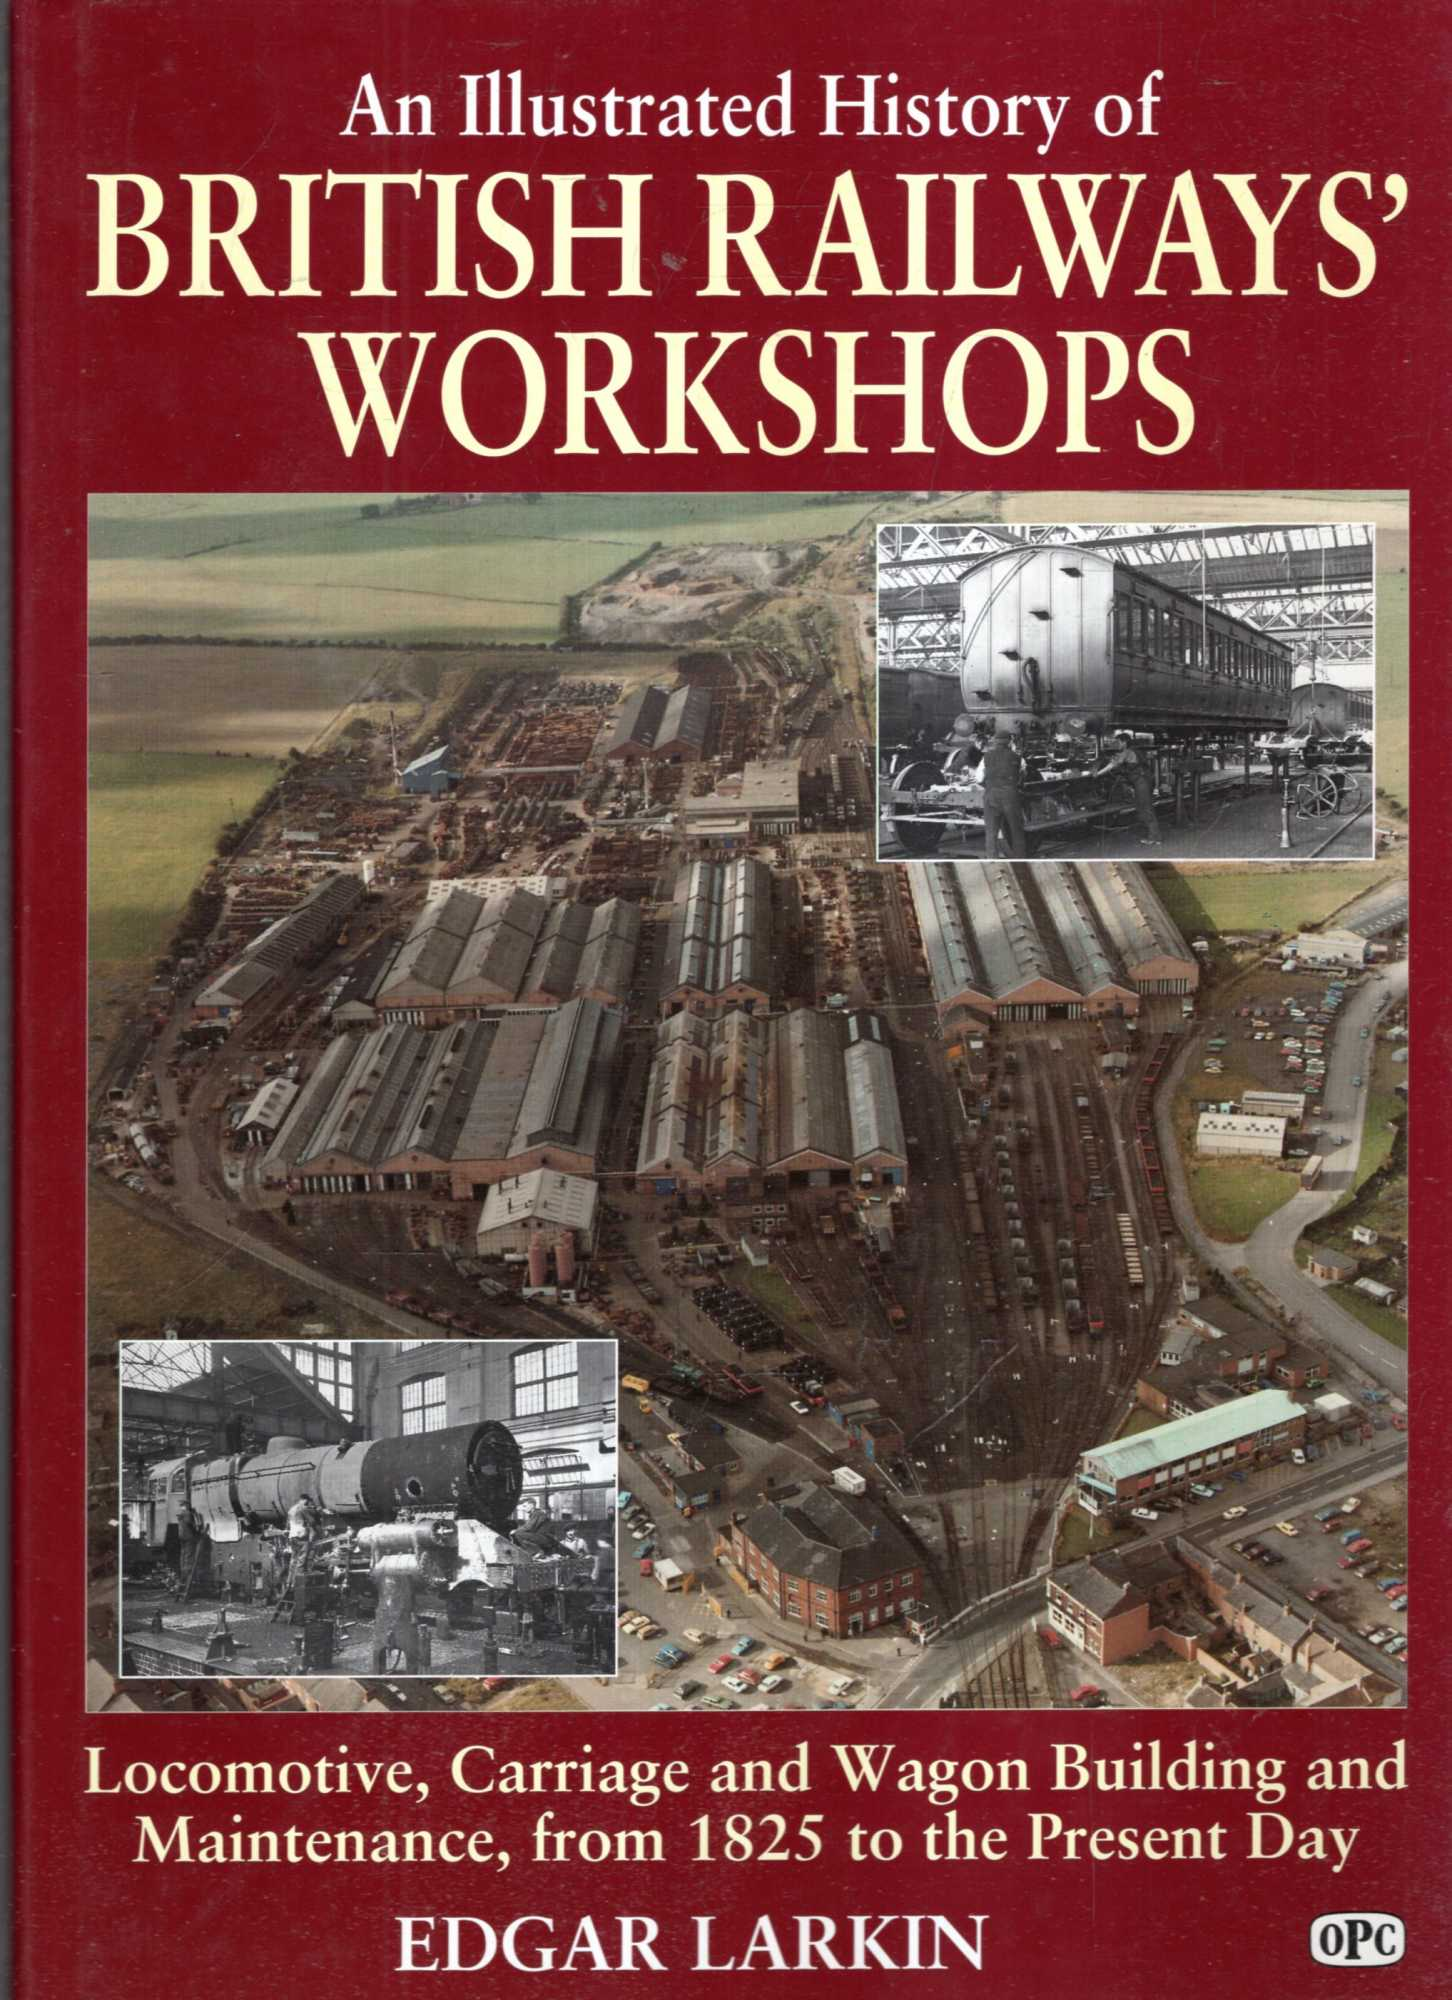 Image for An Illustrated History of British Railways' Workshops : Locomotive, Carriage and Wagon Building and Maintenance from 1825 to the Present Day